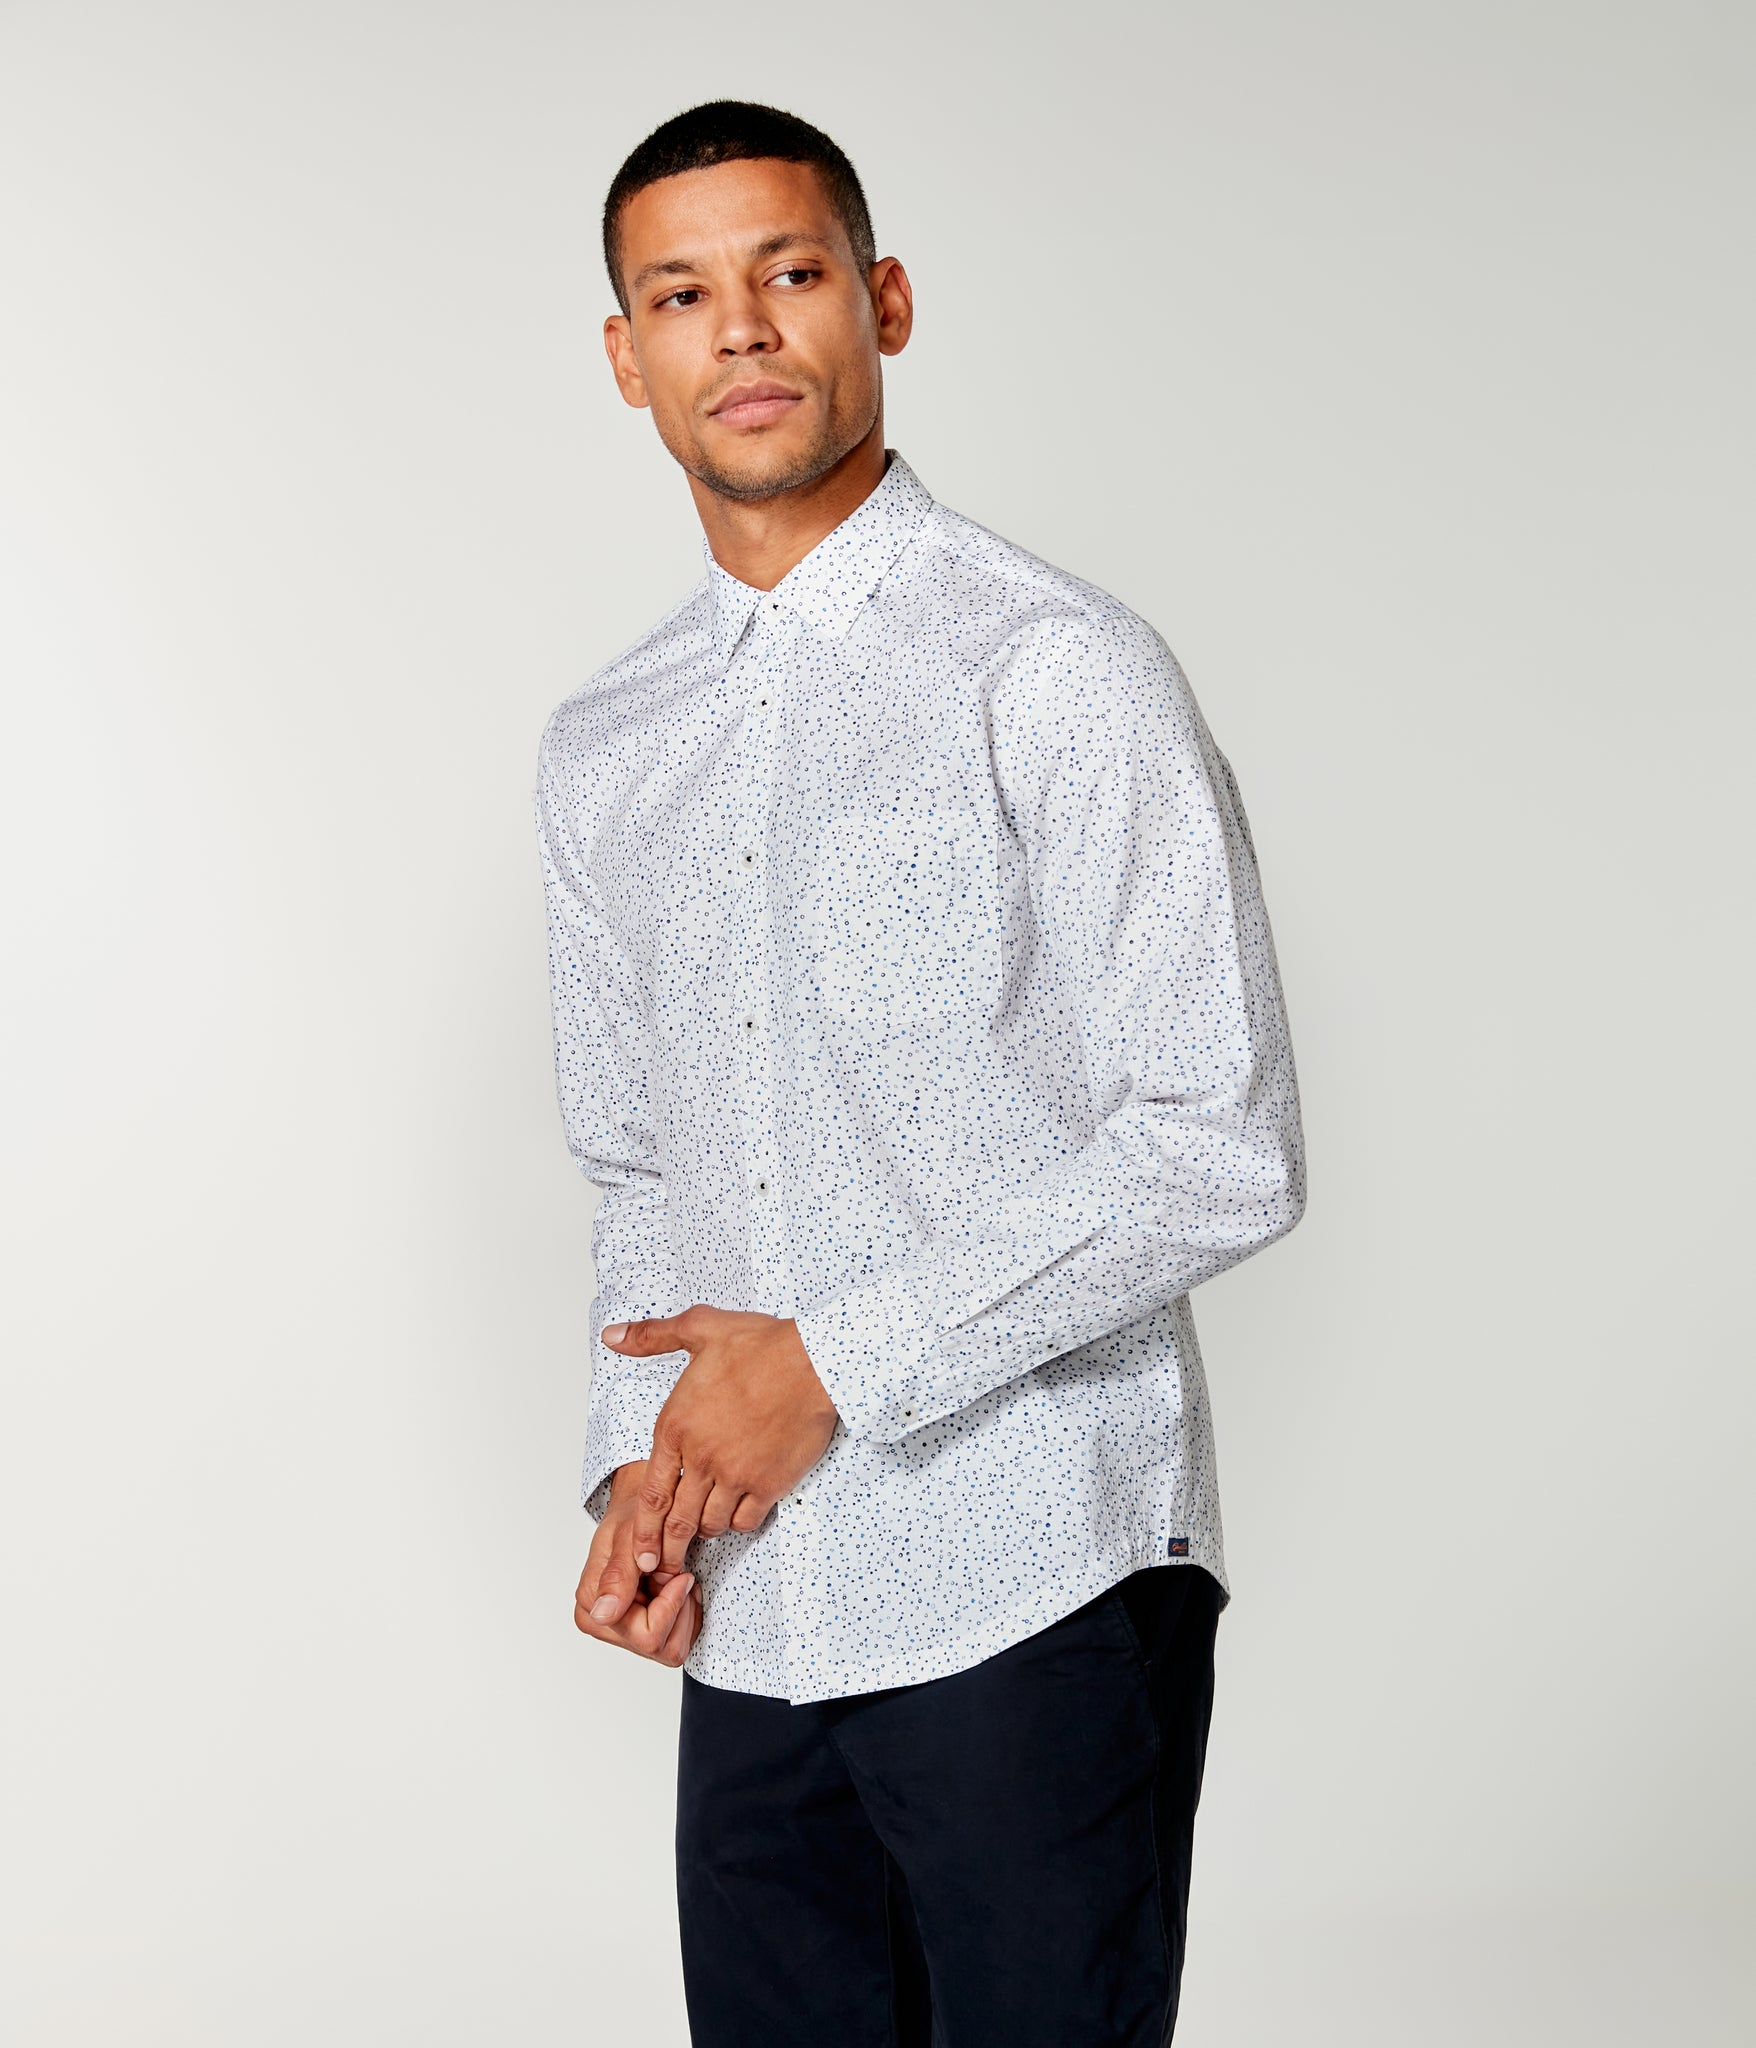 On-Point Print Shirt - White Micro Dot